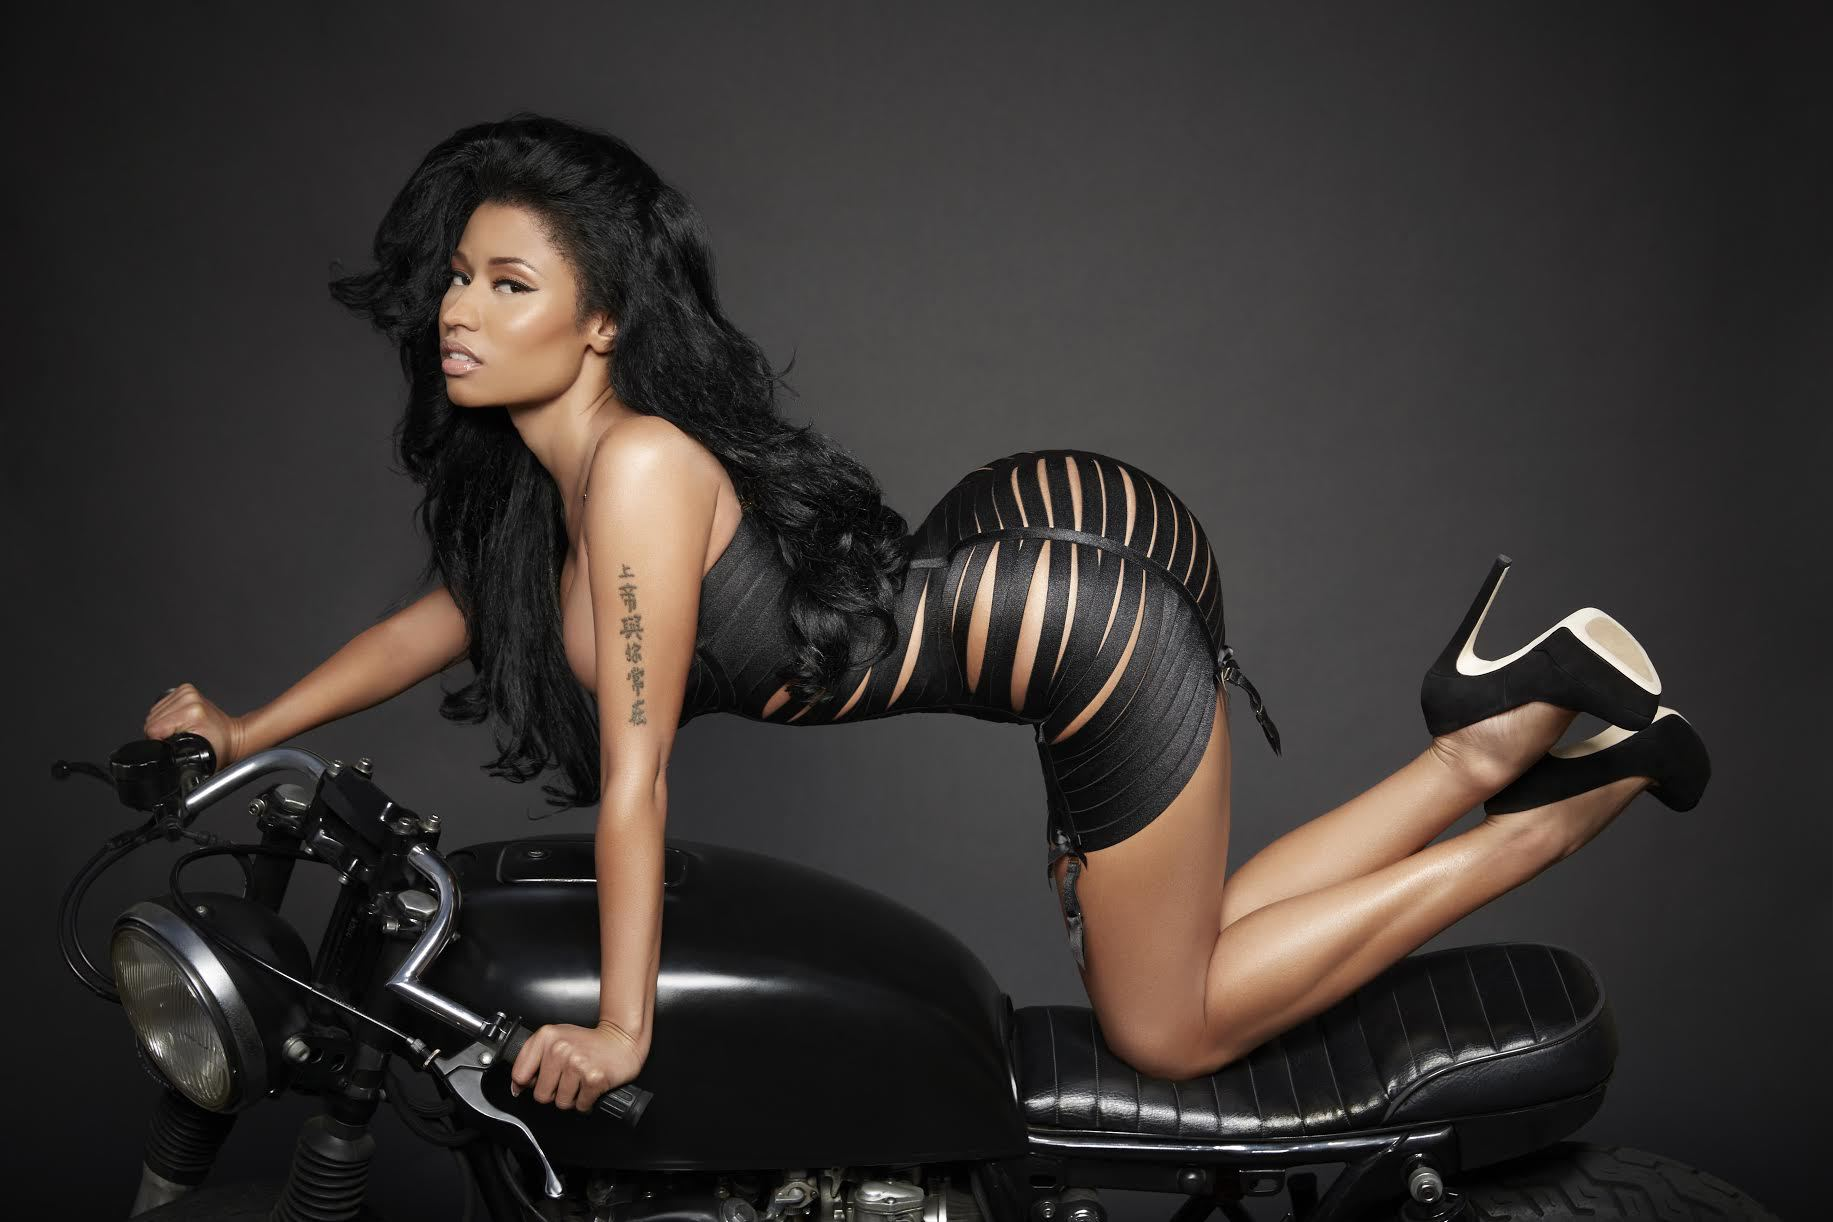 Pictures Of Nicki Minaj